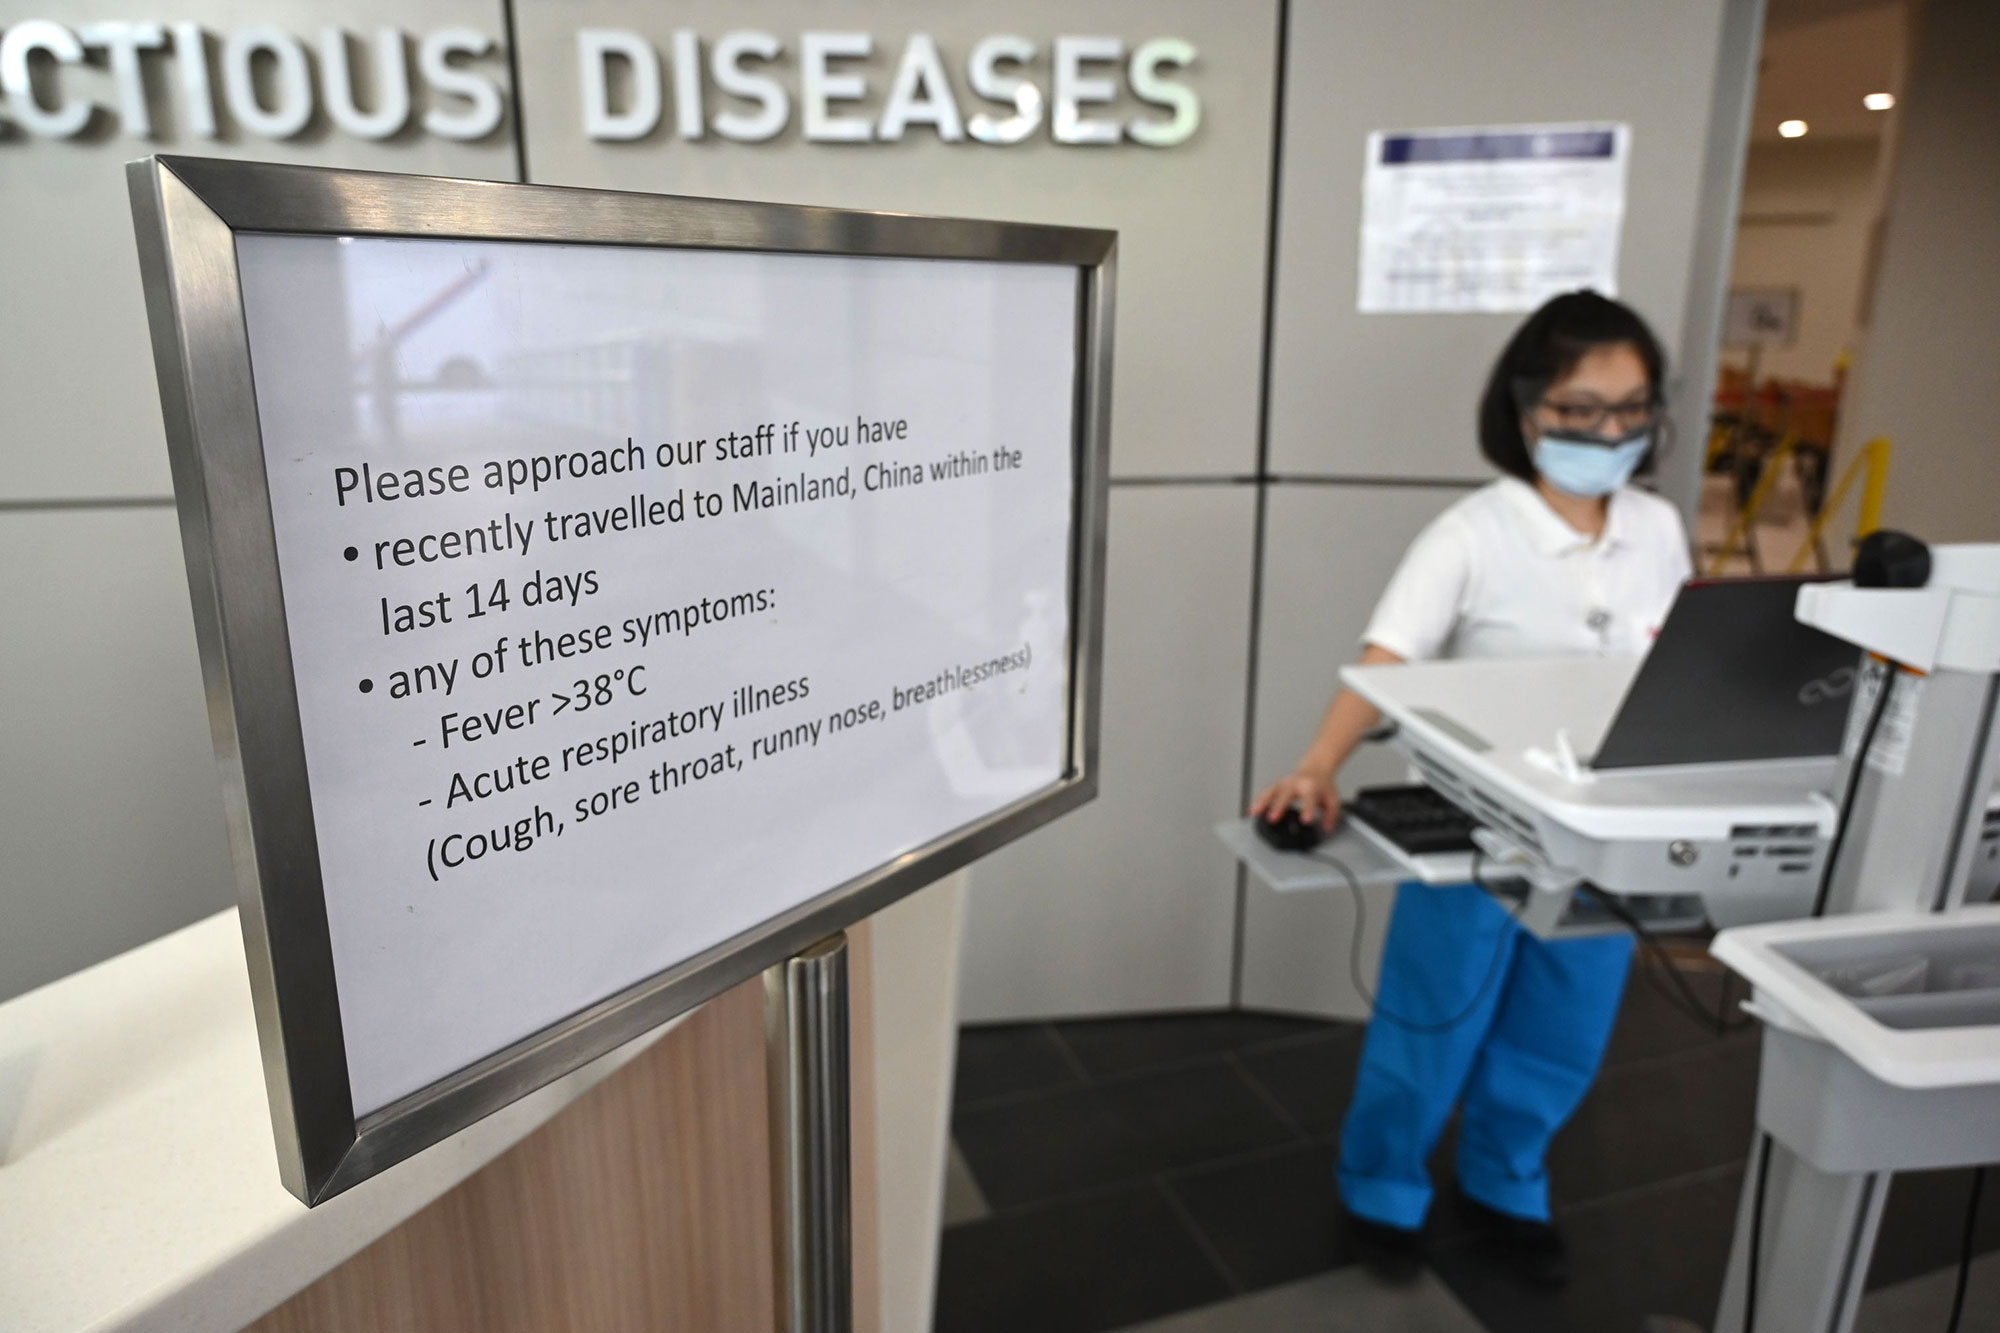 Medical staff prepare pre screening procedure at the National Centre for Infectious Diseases building at Tan Tock Seng Hospital in Singapore.